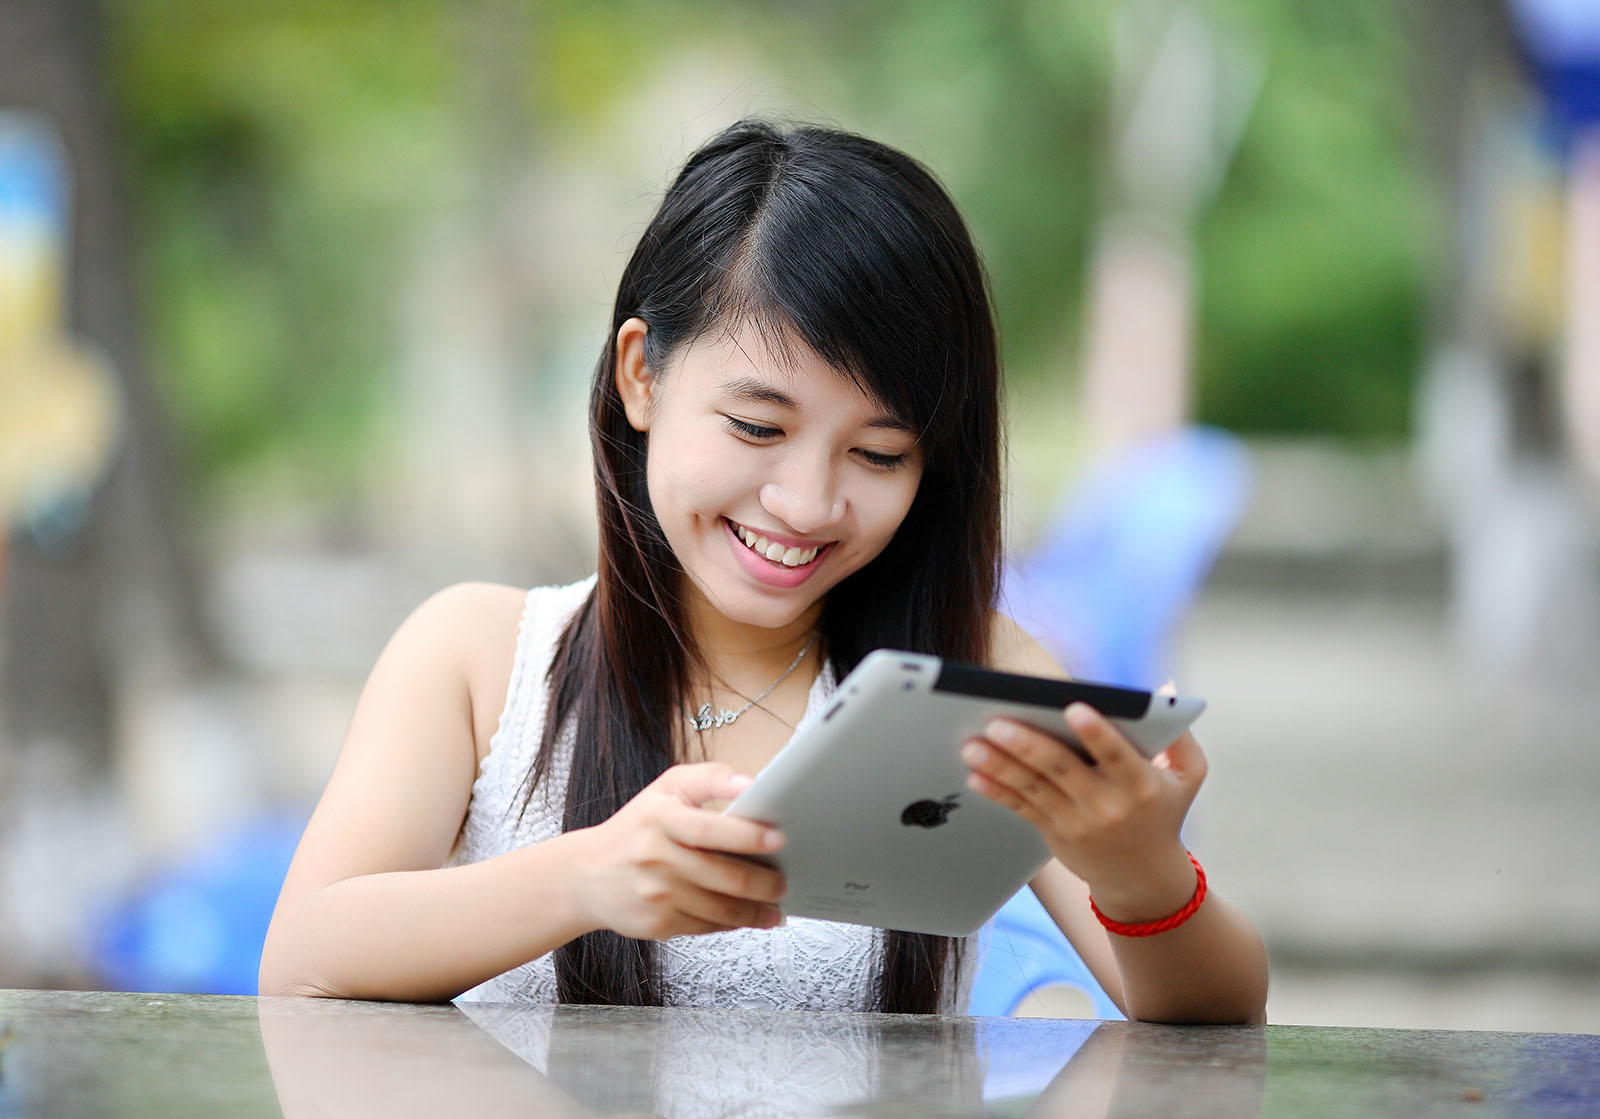 A woman smiling whilst using an ipad.